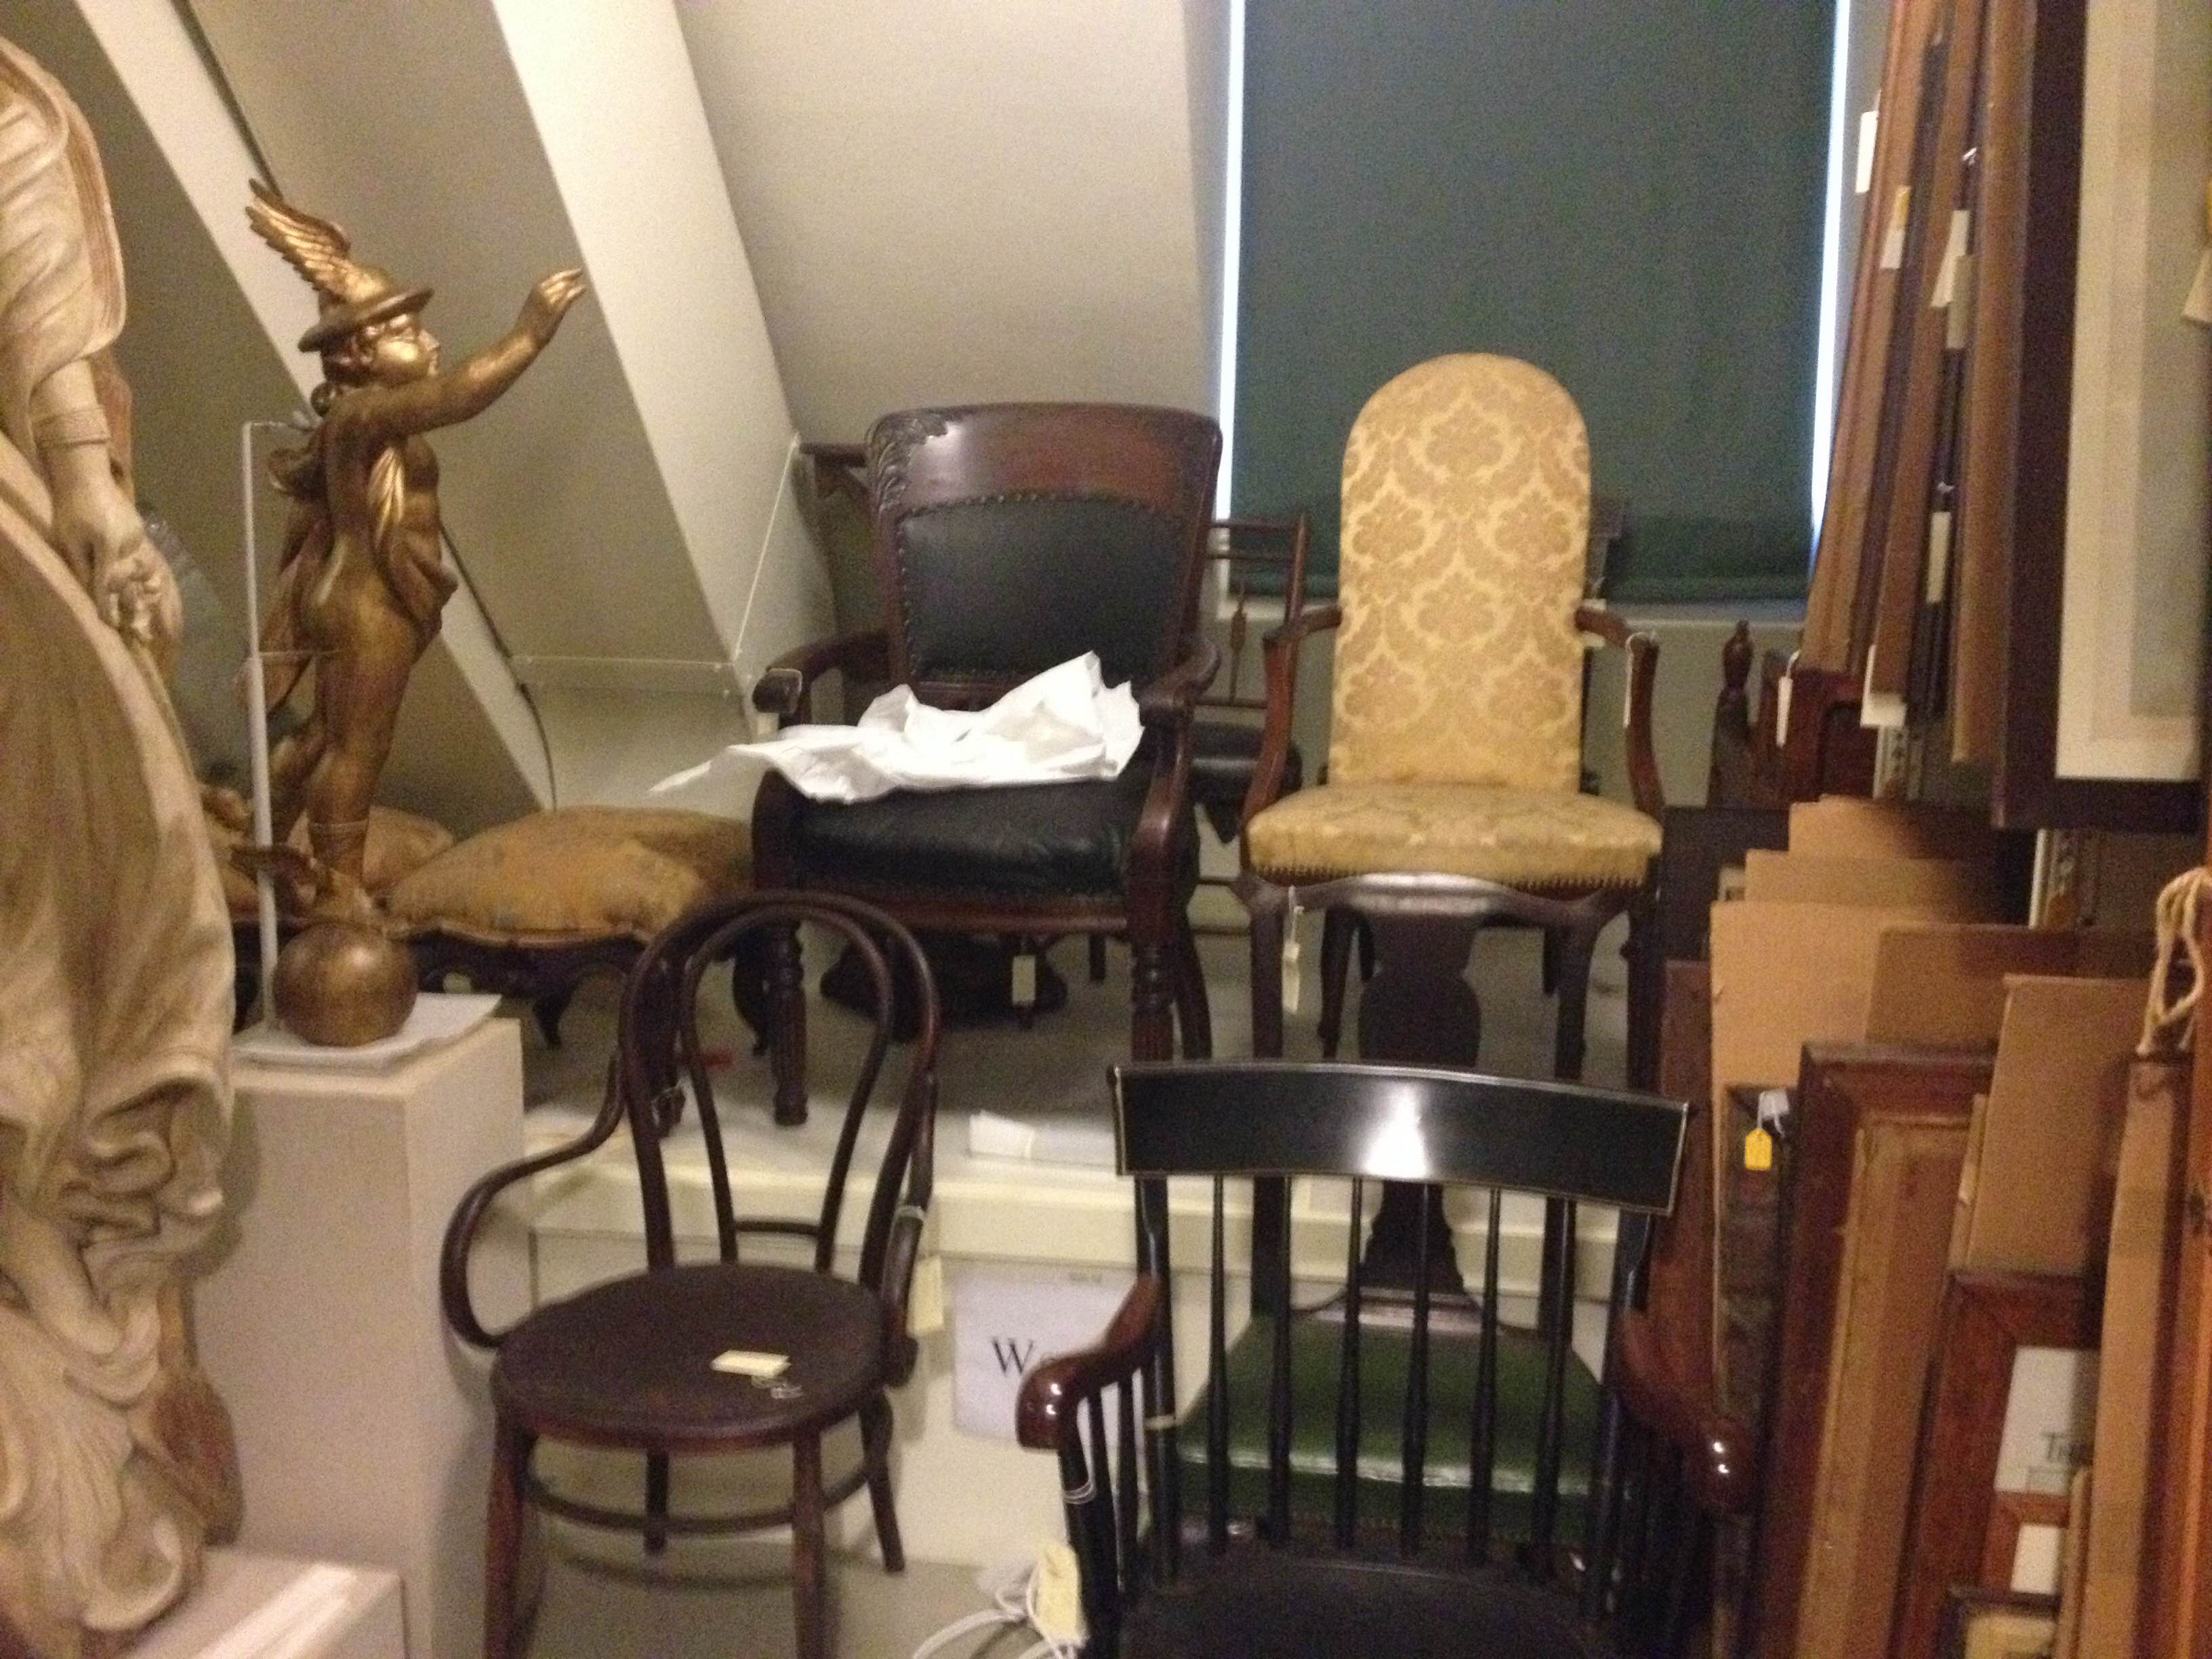 An example of the diverse holdings of chairs from the Bostonian Society, and the problems their surroundings presented when it came to moving them.